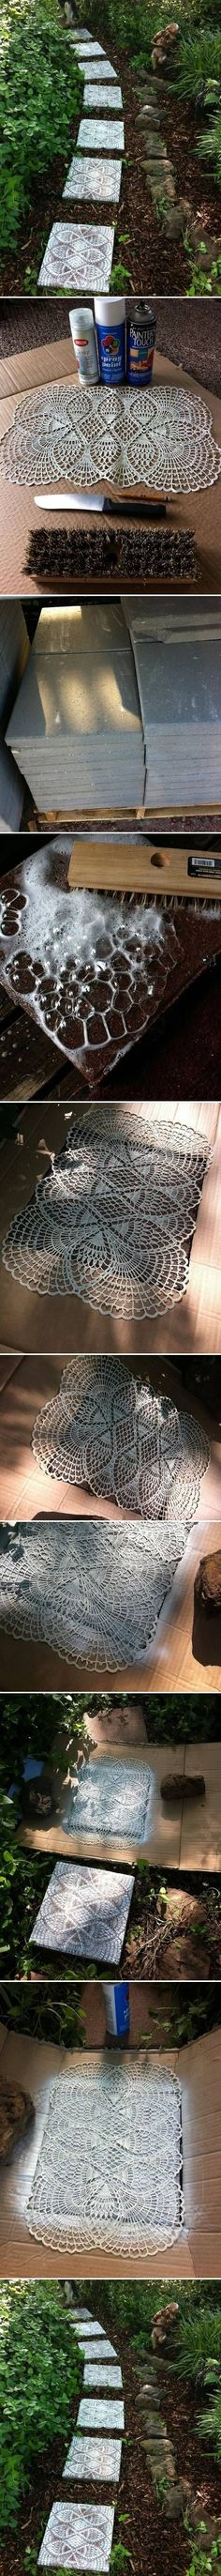 DIY Lace Like Stepping Stones-get creative with this one!   , , , , , stone